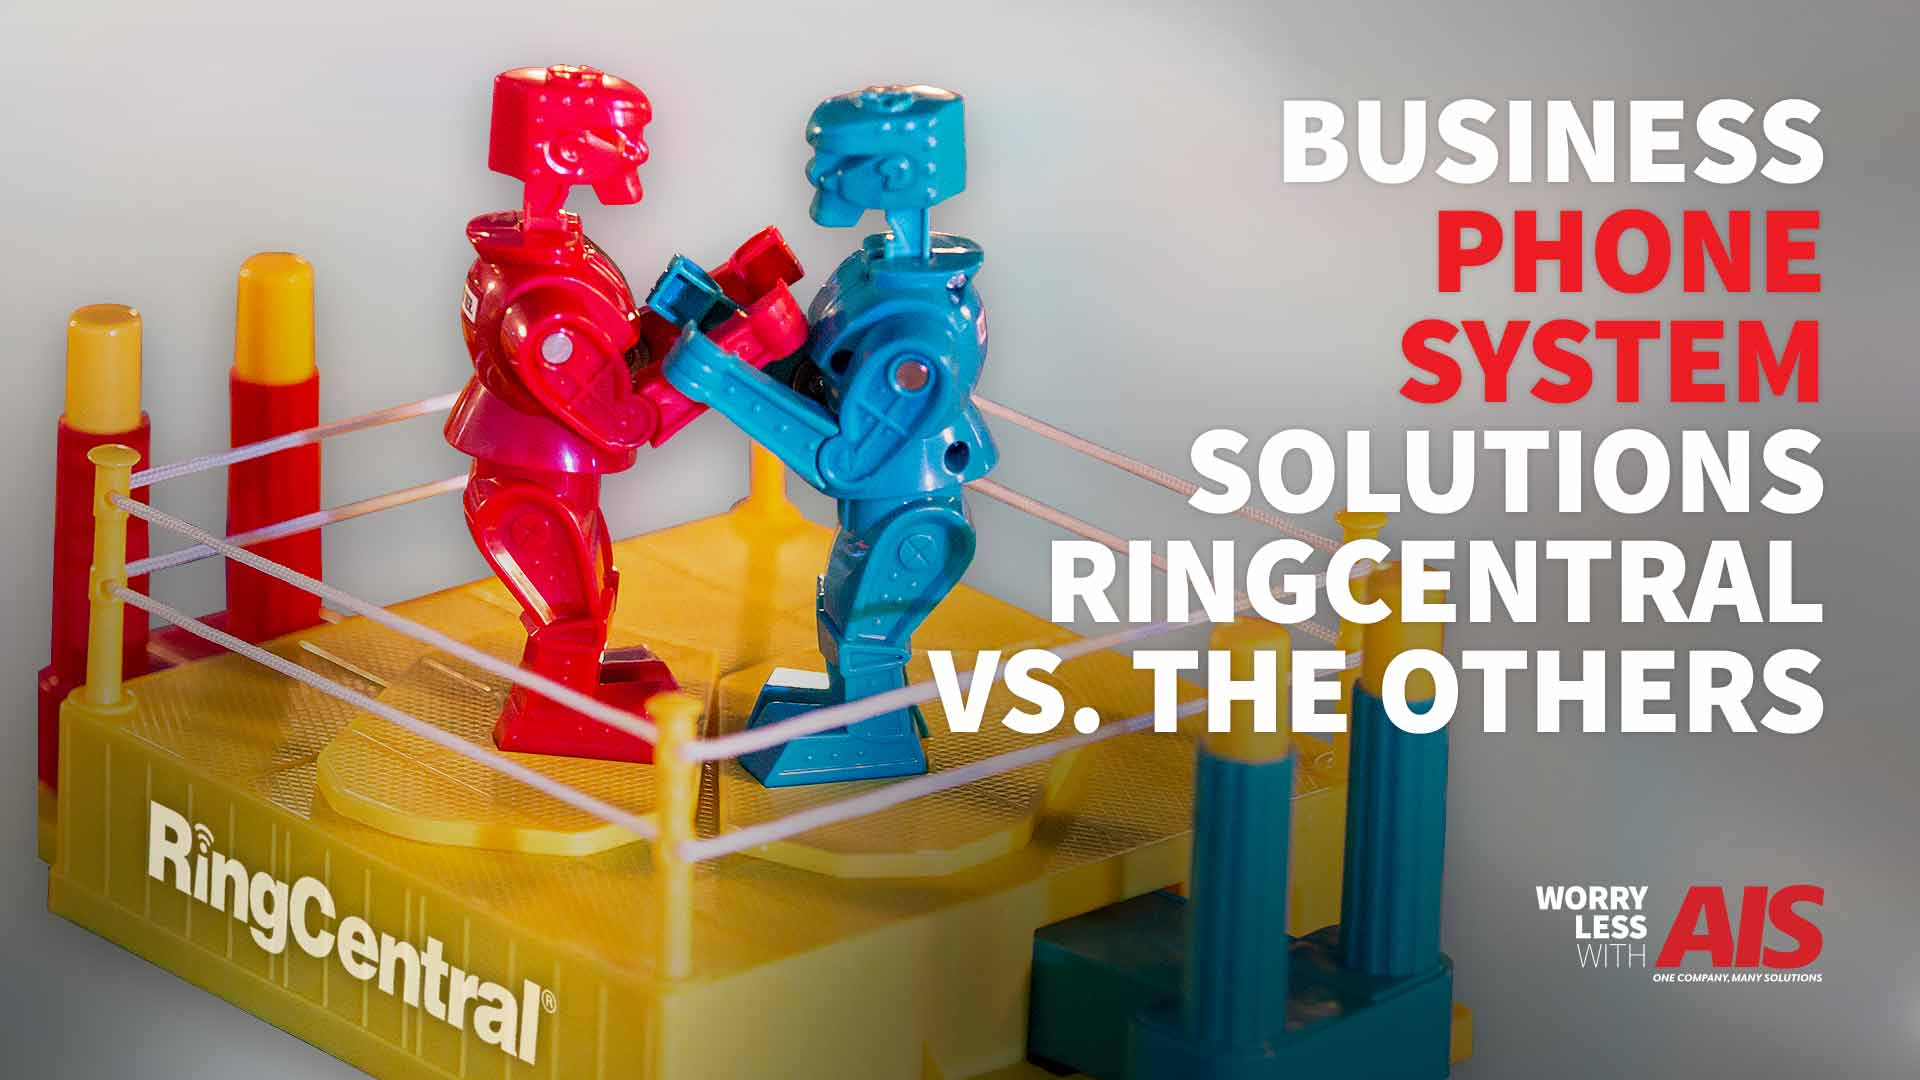 ringcentral-vs-others